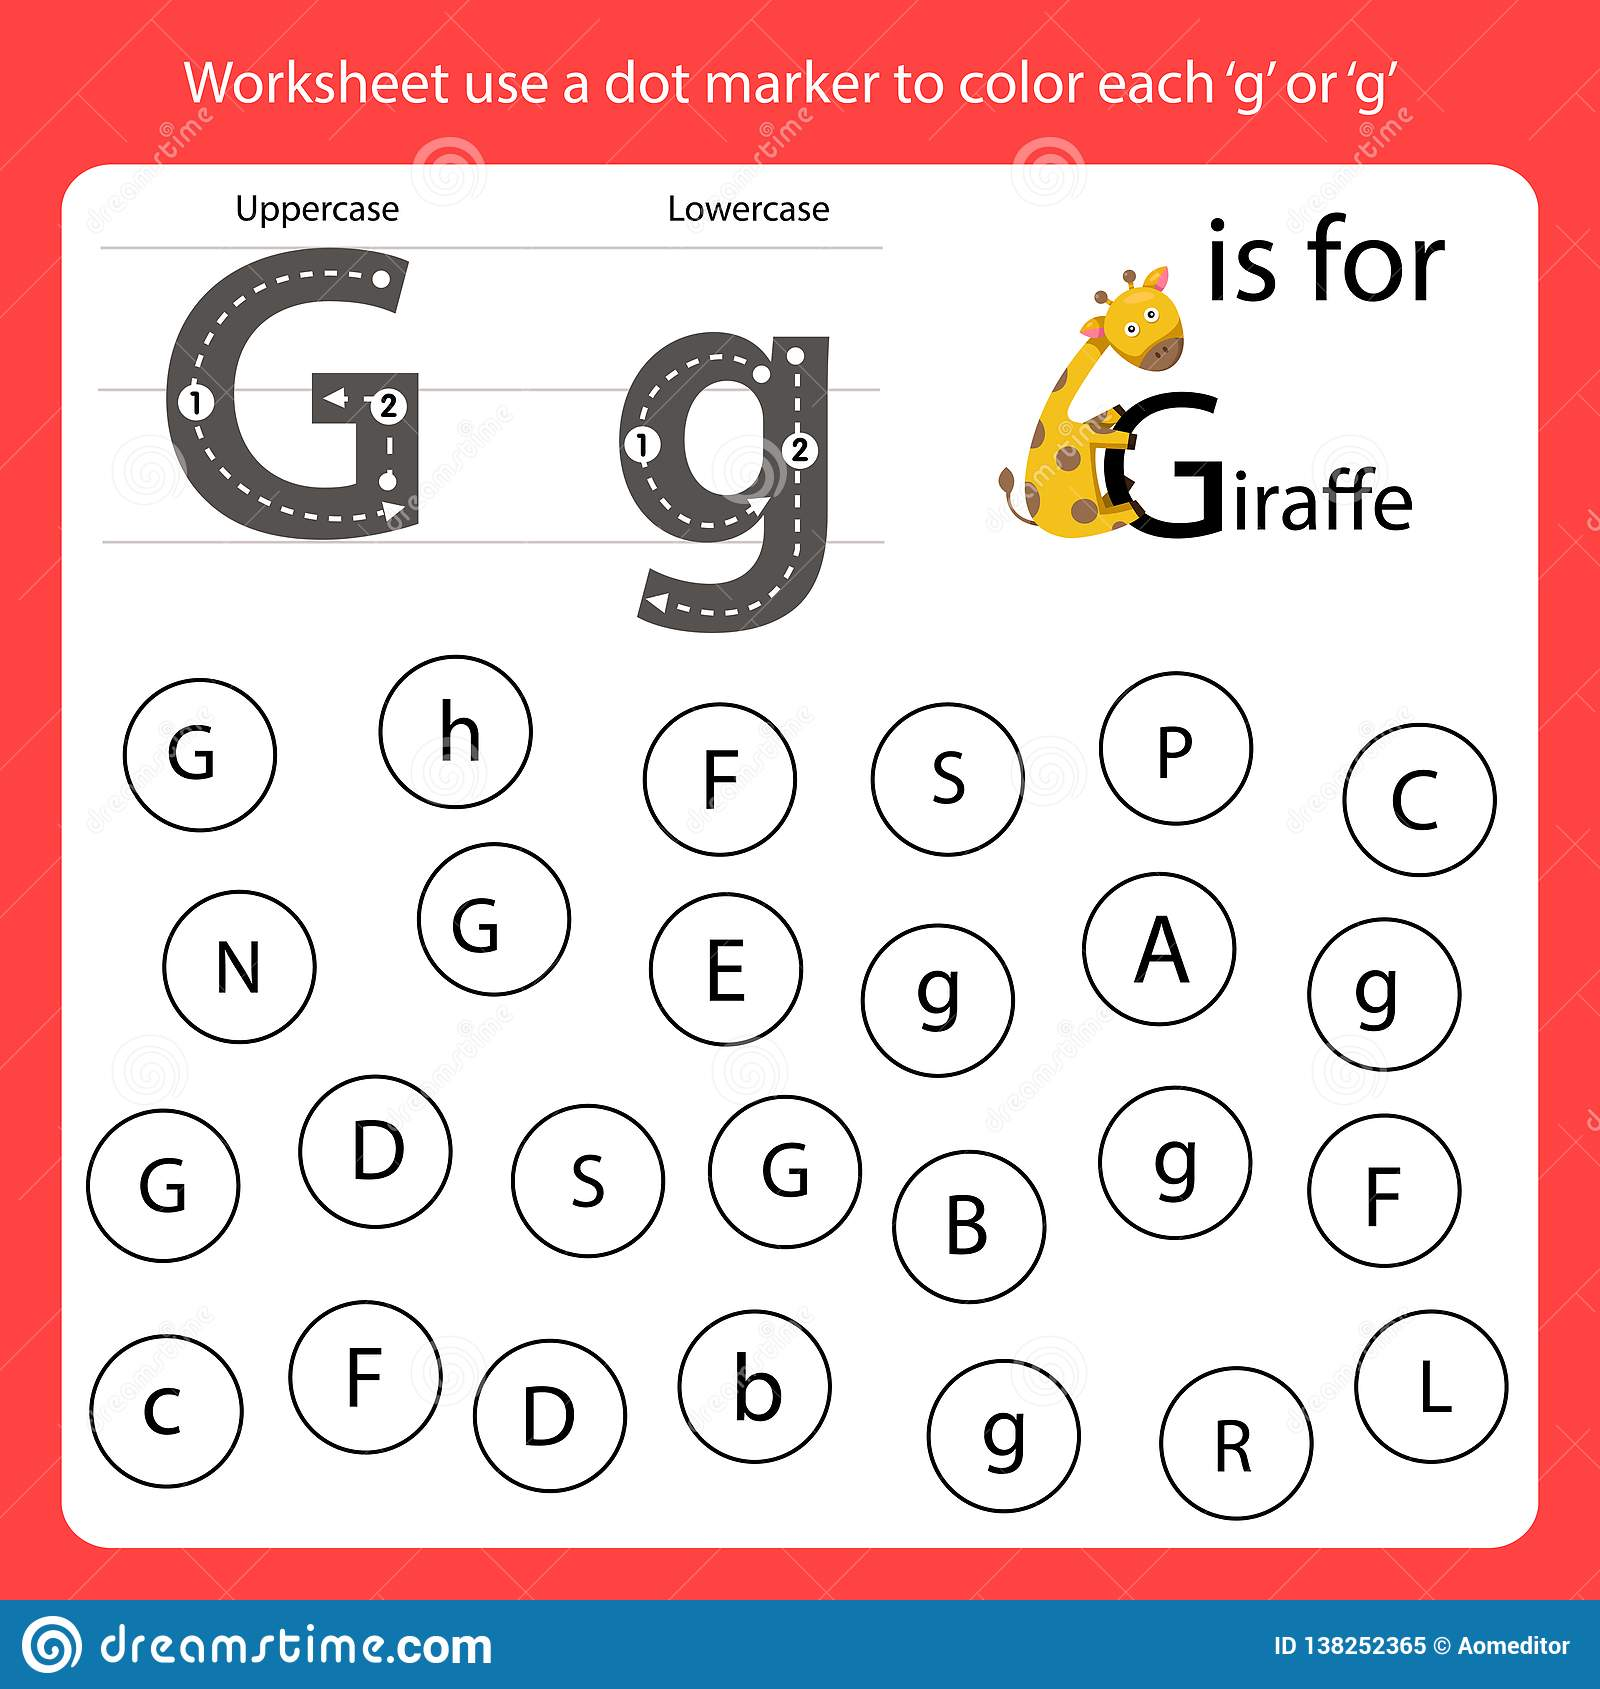 Find The Letter Worksheet Use A Dot Marker To Color Each G